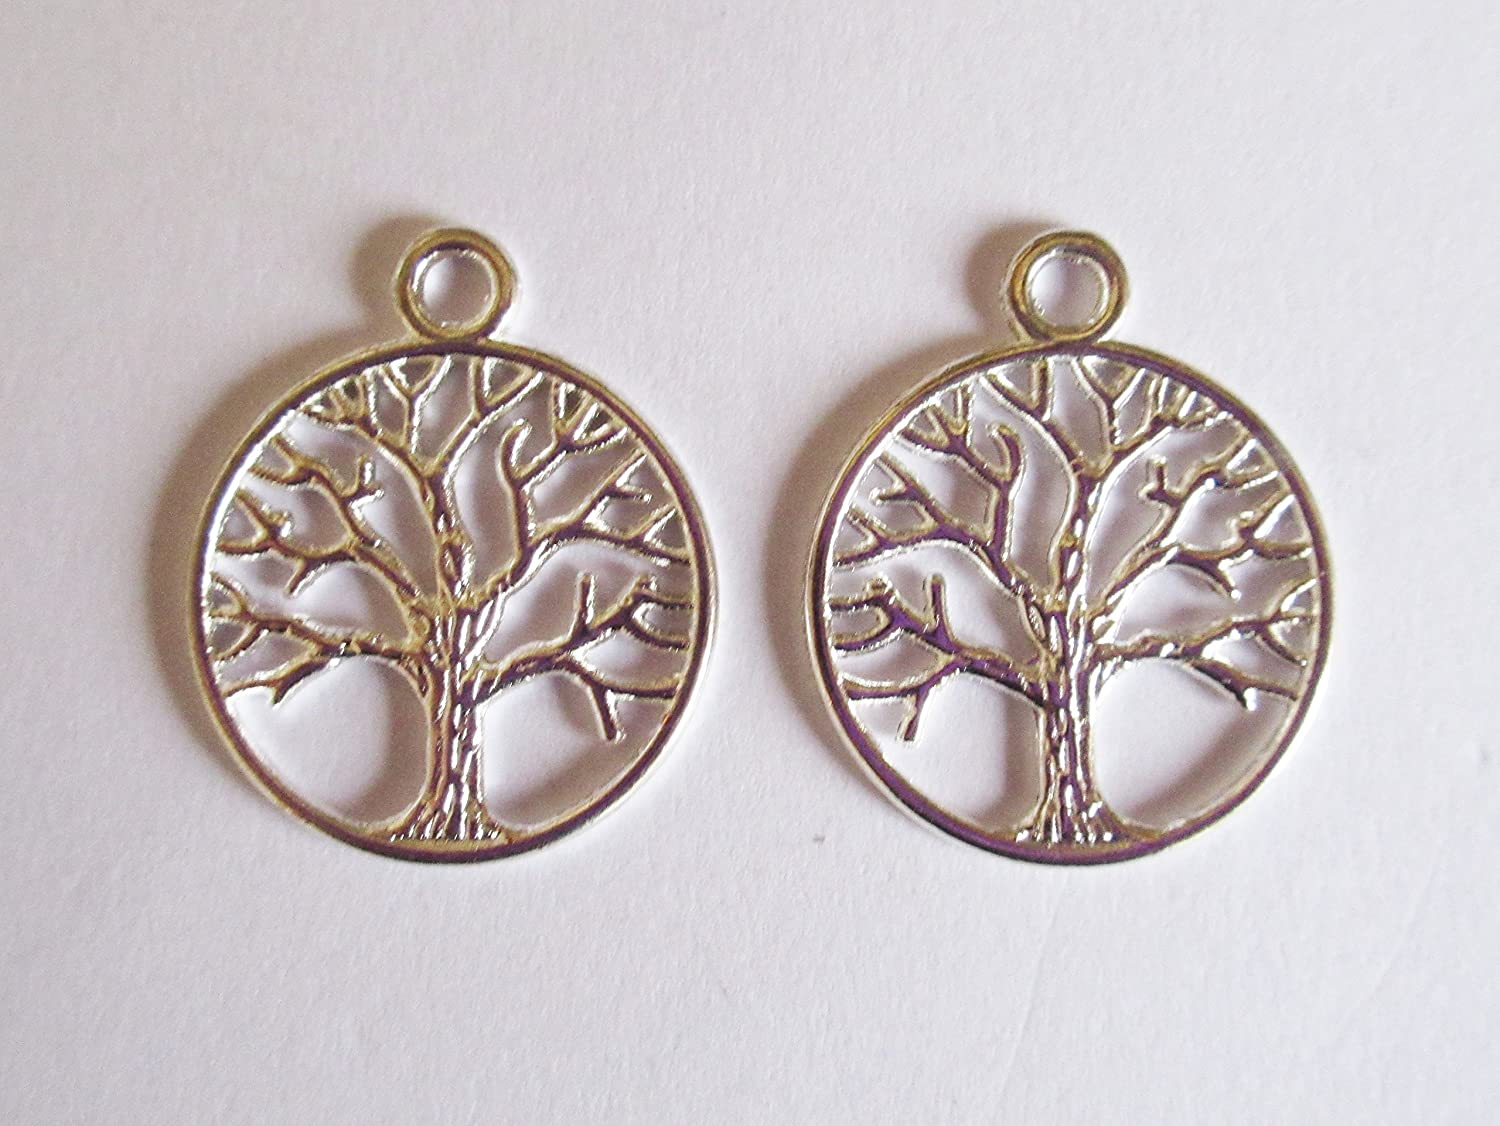 10 x Tibetan Silver TREE OF LIFE WICCAN SPIRITUAL 24mm Charms Pendants Beads Pink Cat Charms